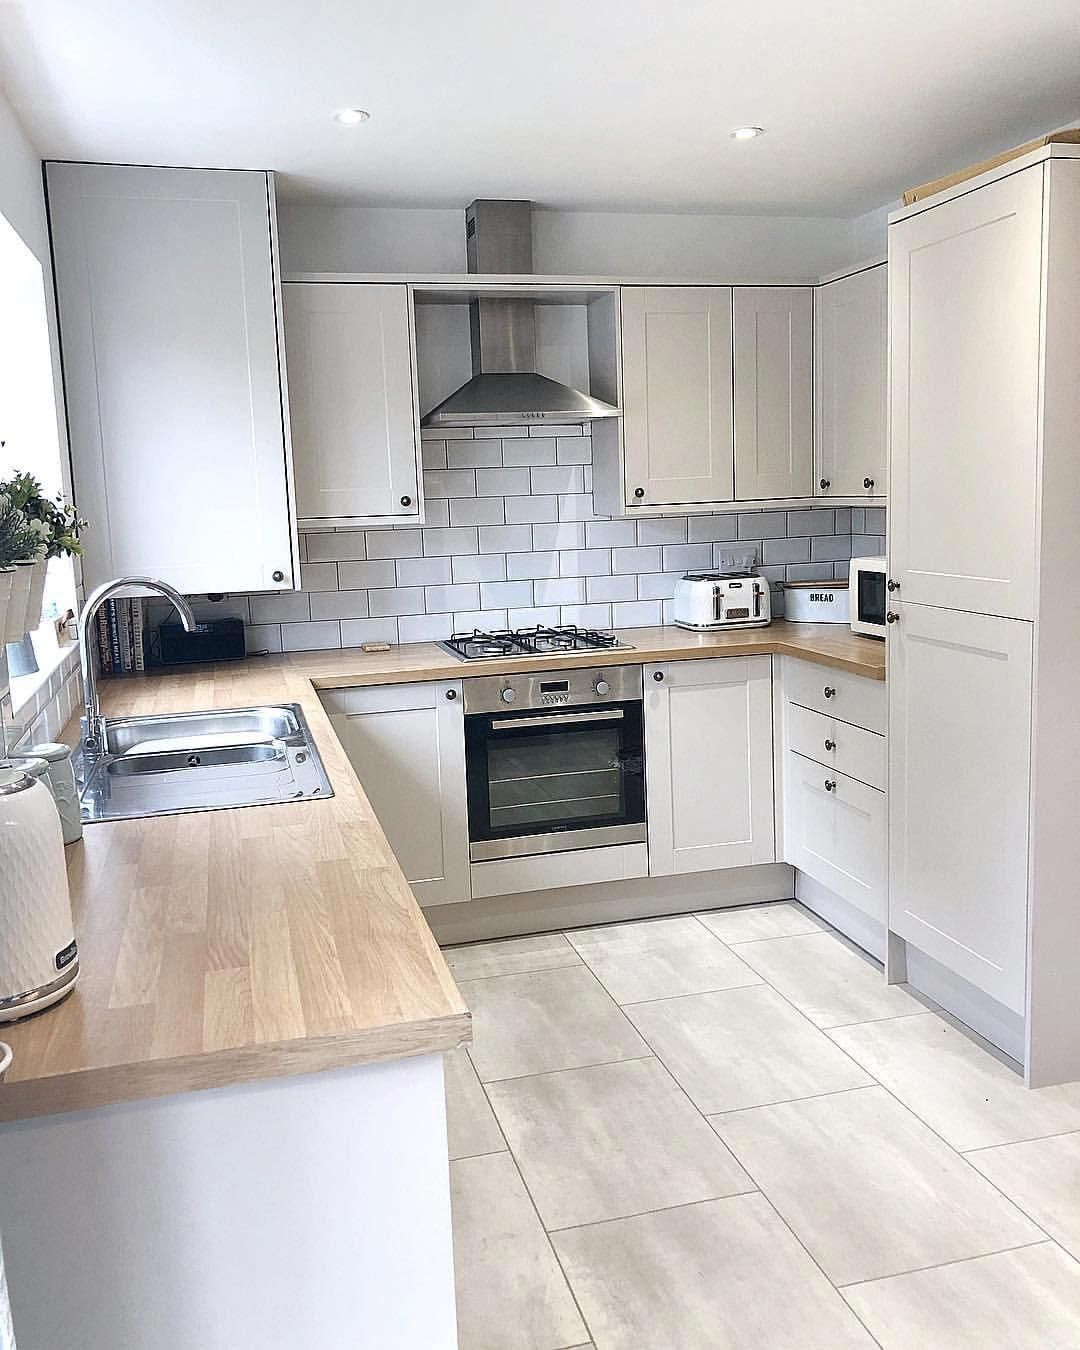 Howdens Burford Kitchen In Cashmere With White Subway Tiles And Karndean Flooring Kitchenstyles Kitchen Design Kitchen Design Small Kitchen Flooring